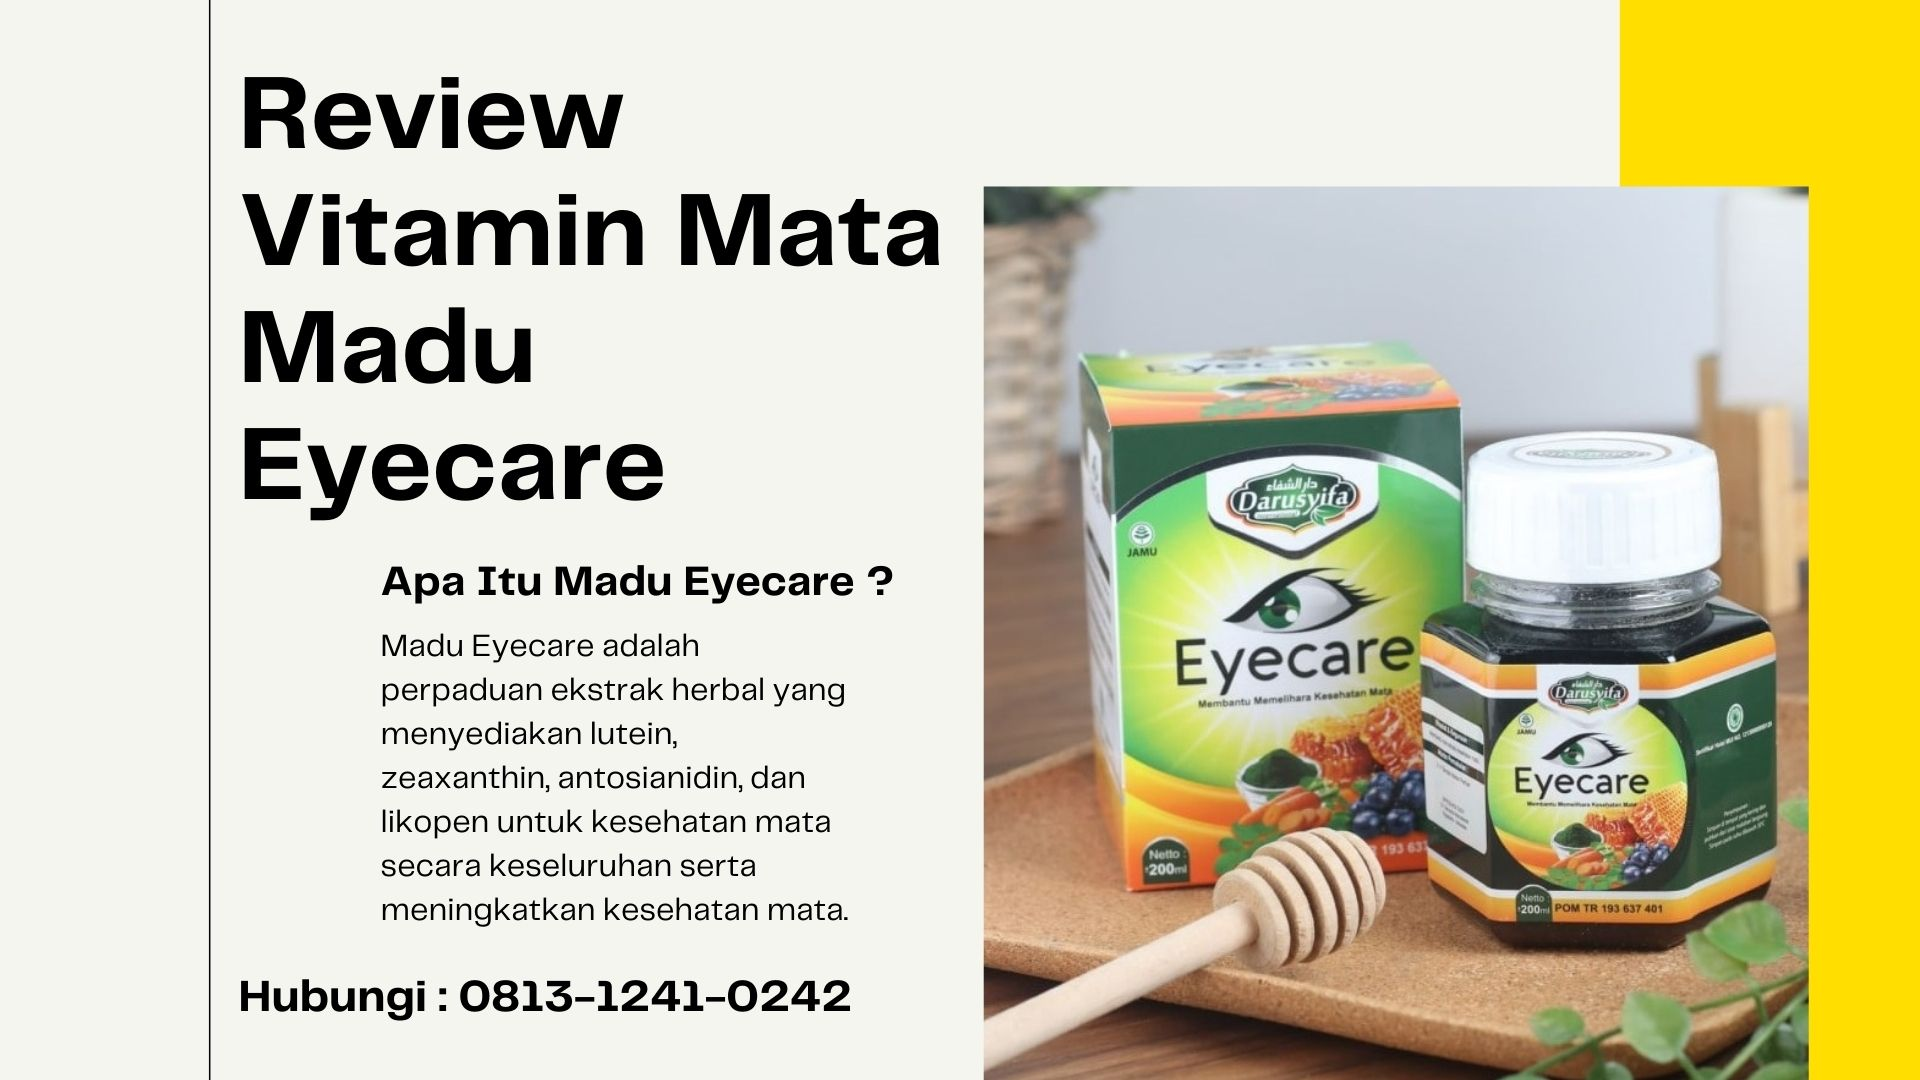 [REVIEW] Madu Eyecare Vitamin Mata, 0813-1241-0242